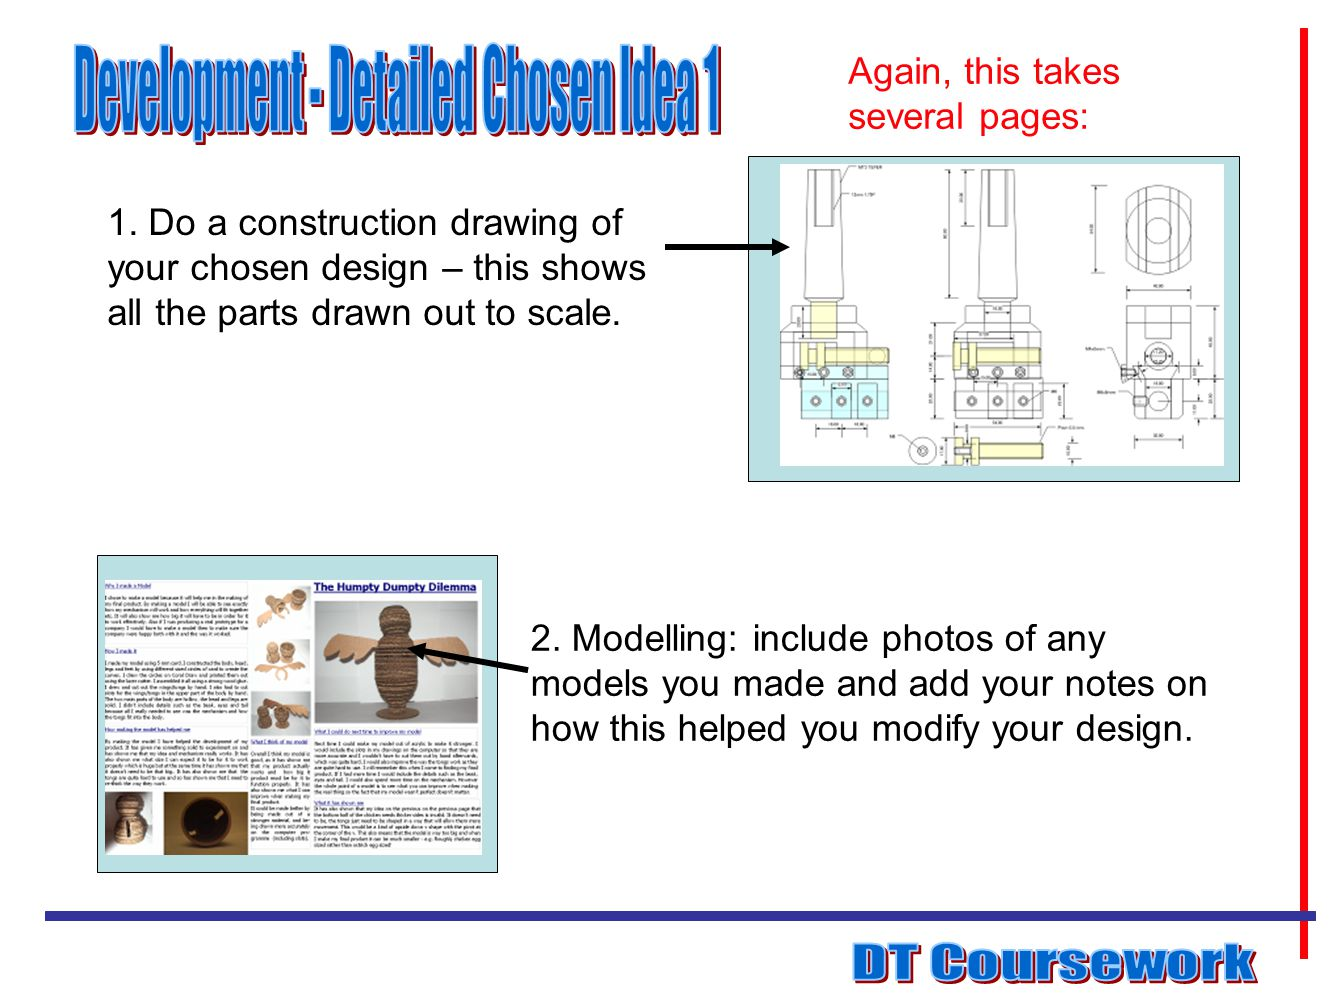 1. Do a construction drawing of your chosen design – this shows all the parts drawn out to scale. 2. Modelling: include photos of any models you made